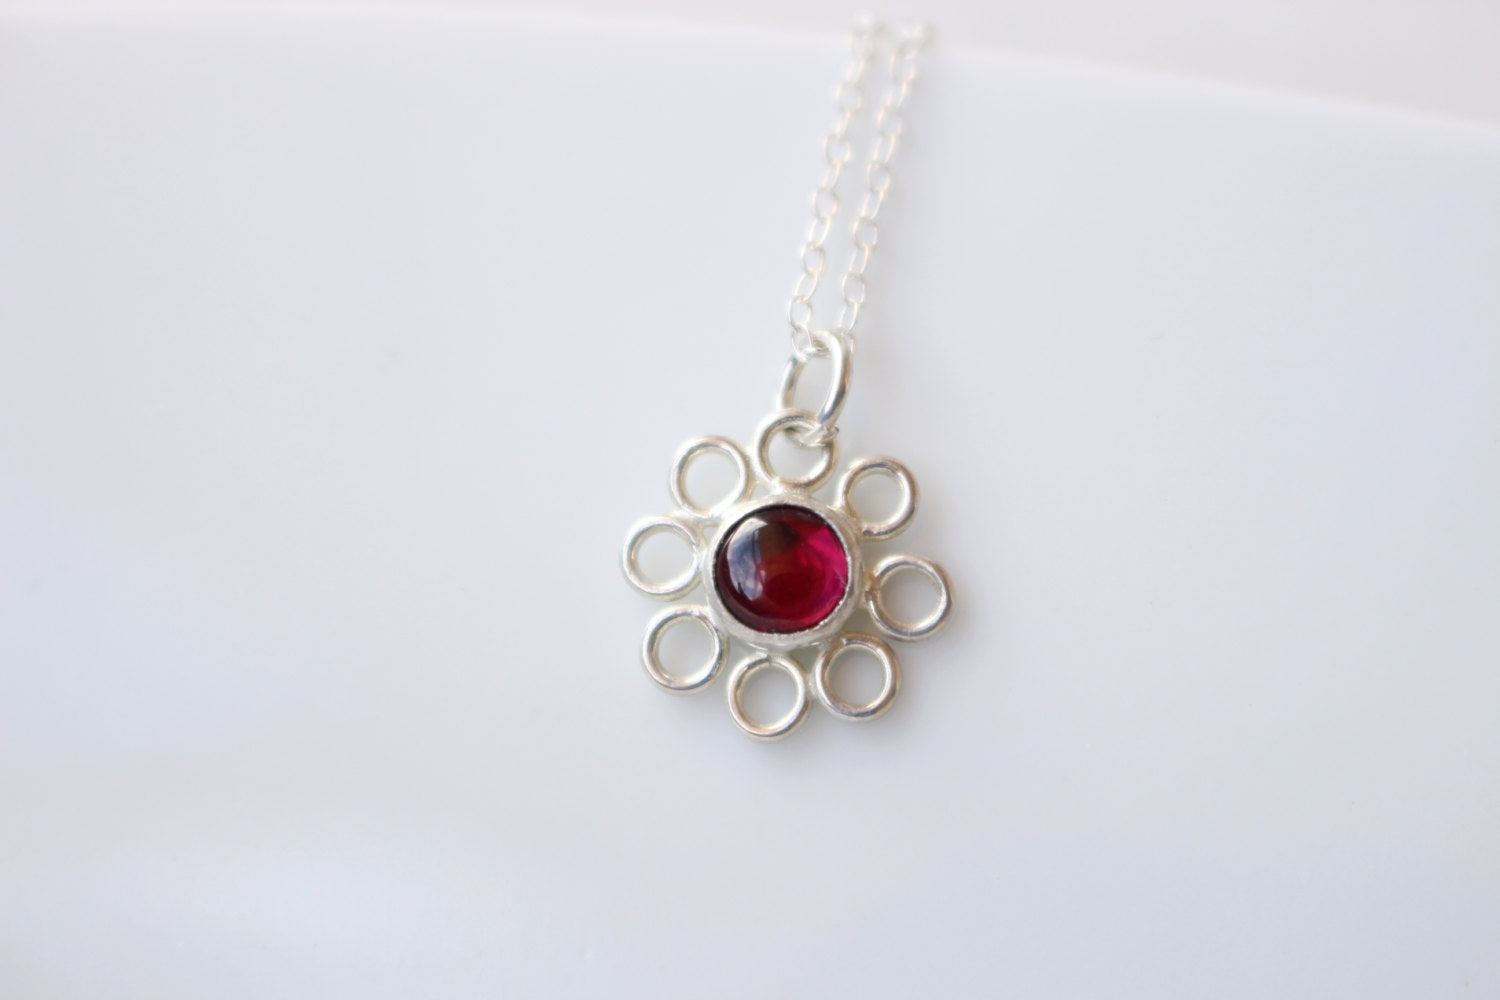 Inspirational Jewelry Gifts for Her January Birthstone Red Stone Necklace Garnet Gemstones Yoga Jewelry Lotus Flower Pendant Necklace